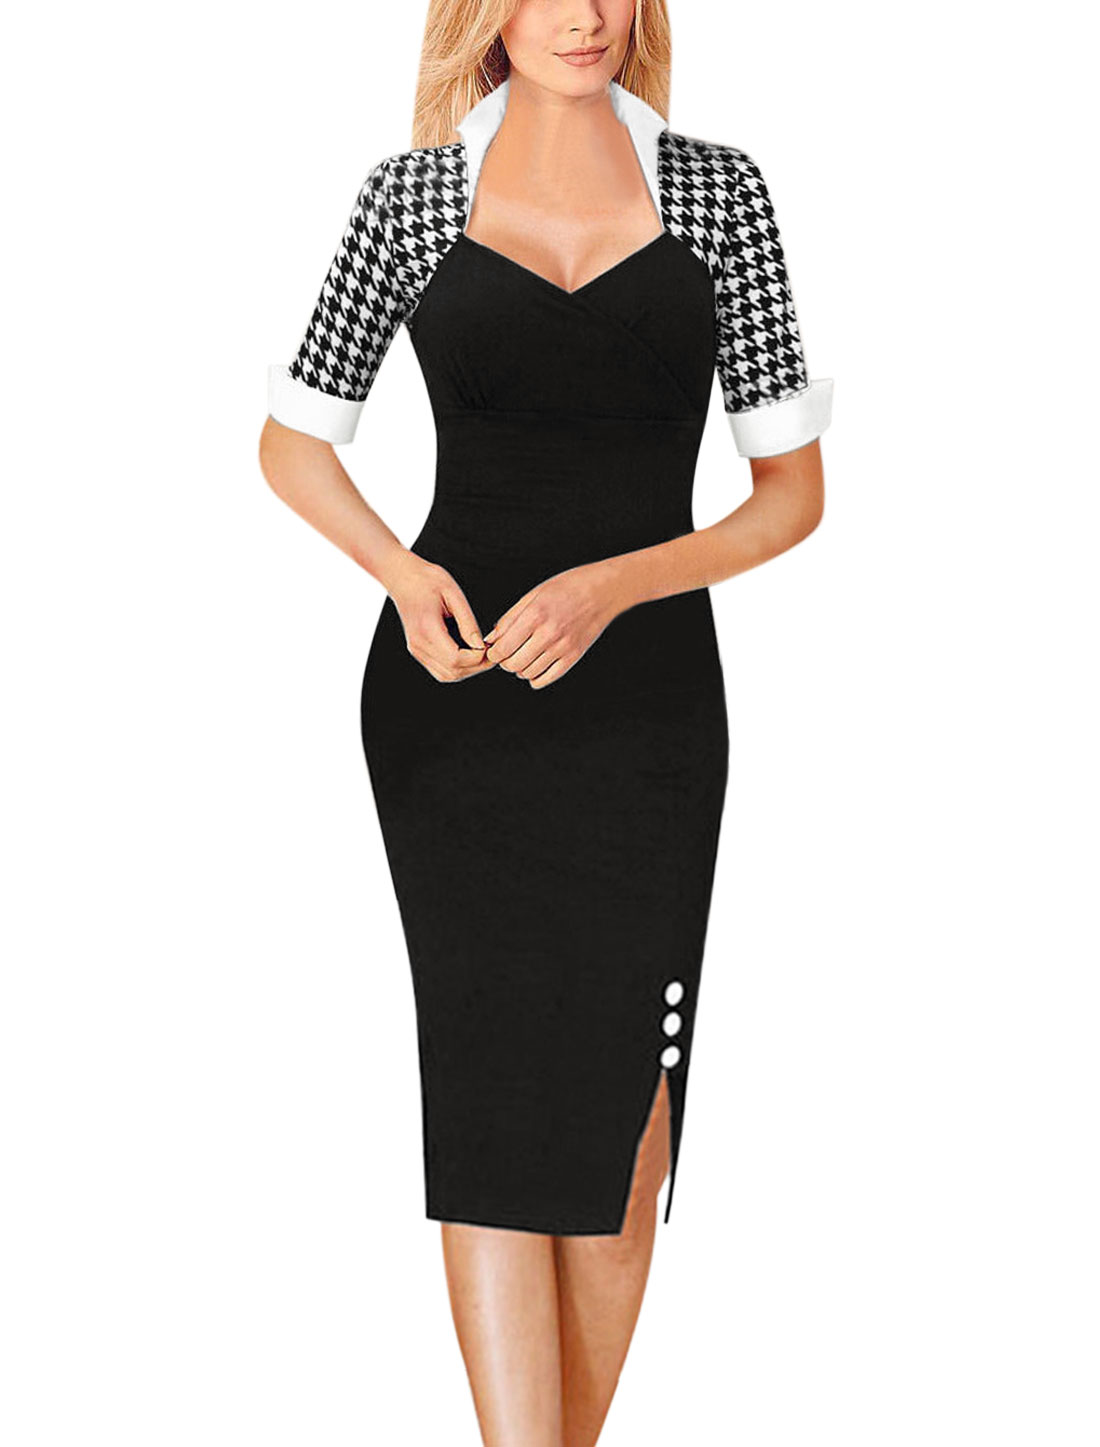 Women Stand Collar Houndstooth Bodycon Dress Black L